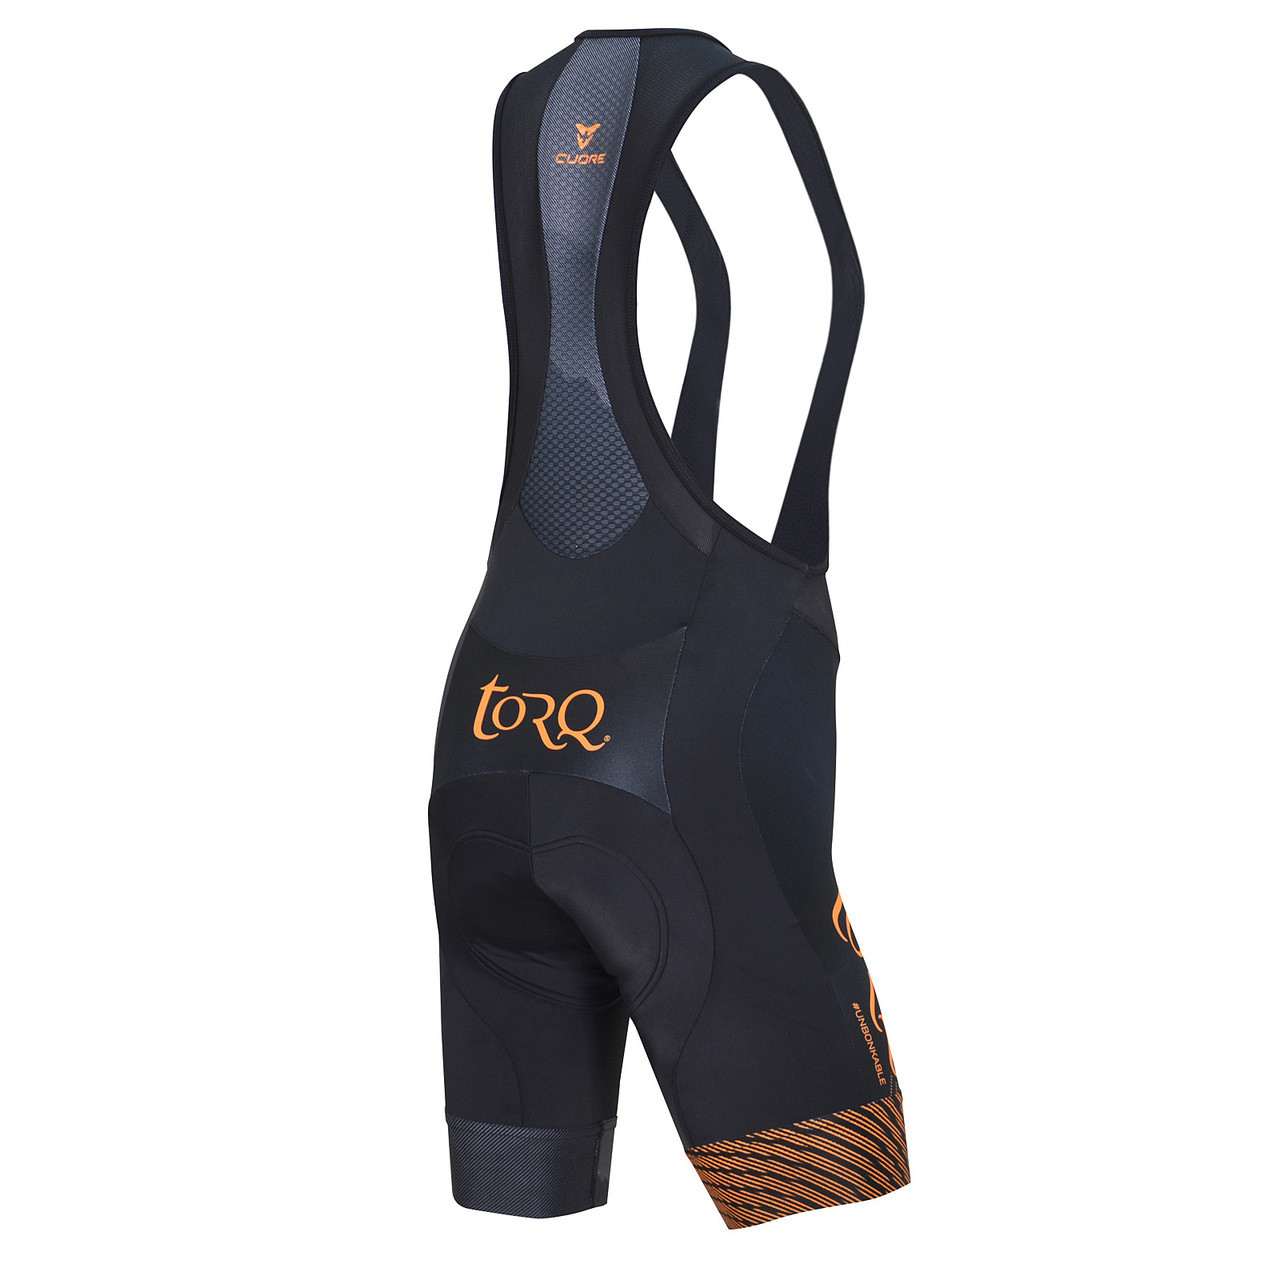 TORQ Team Kit - Womens